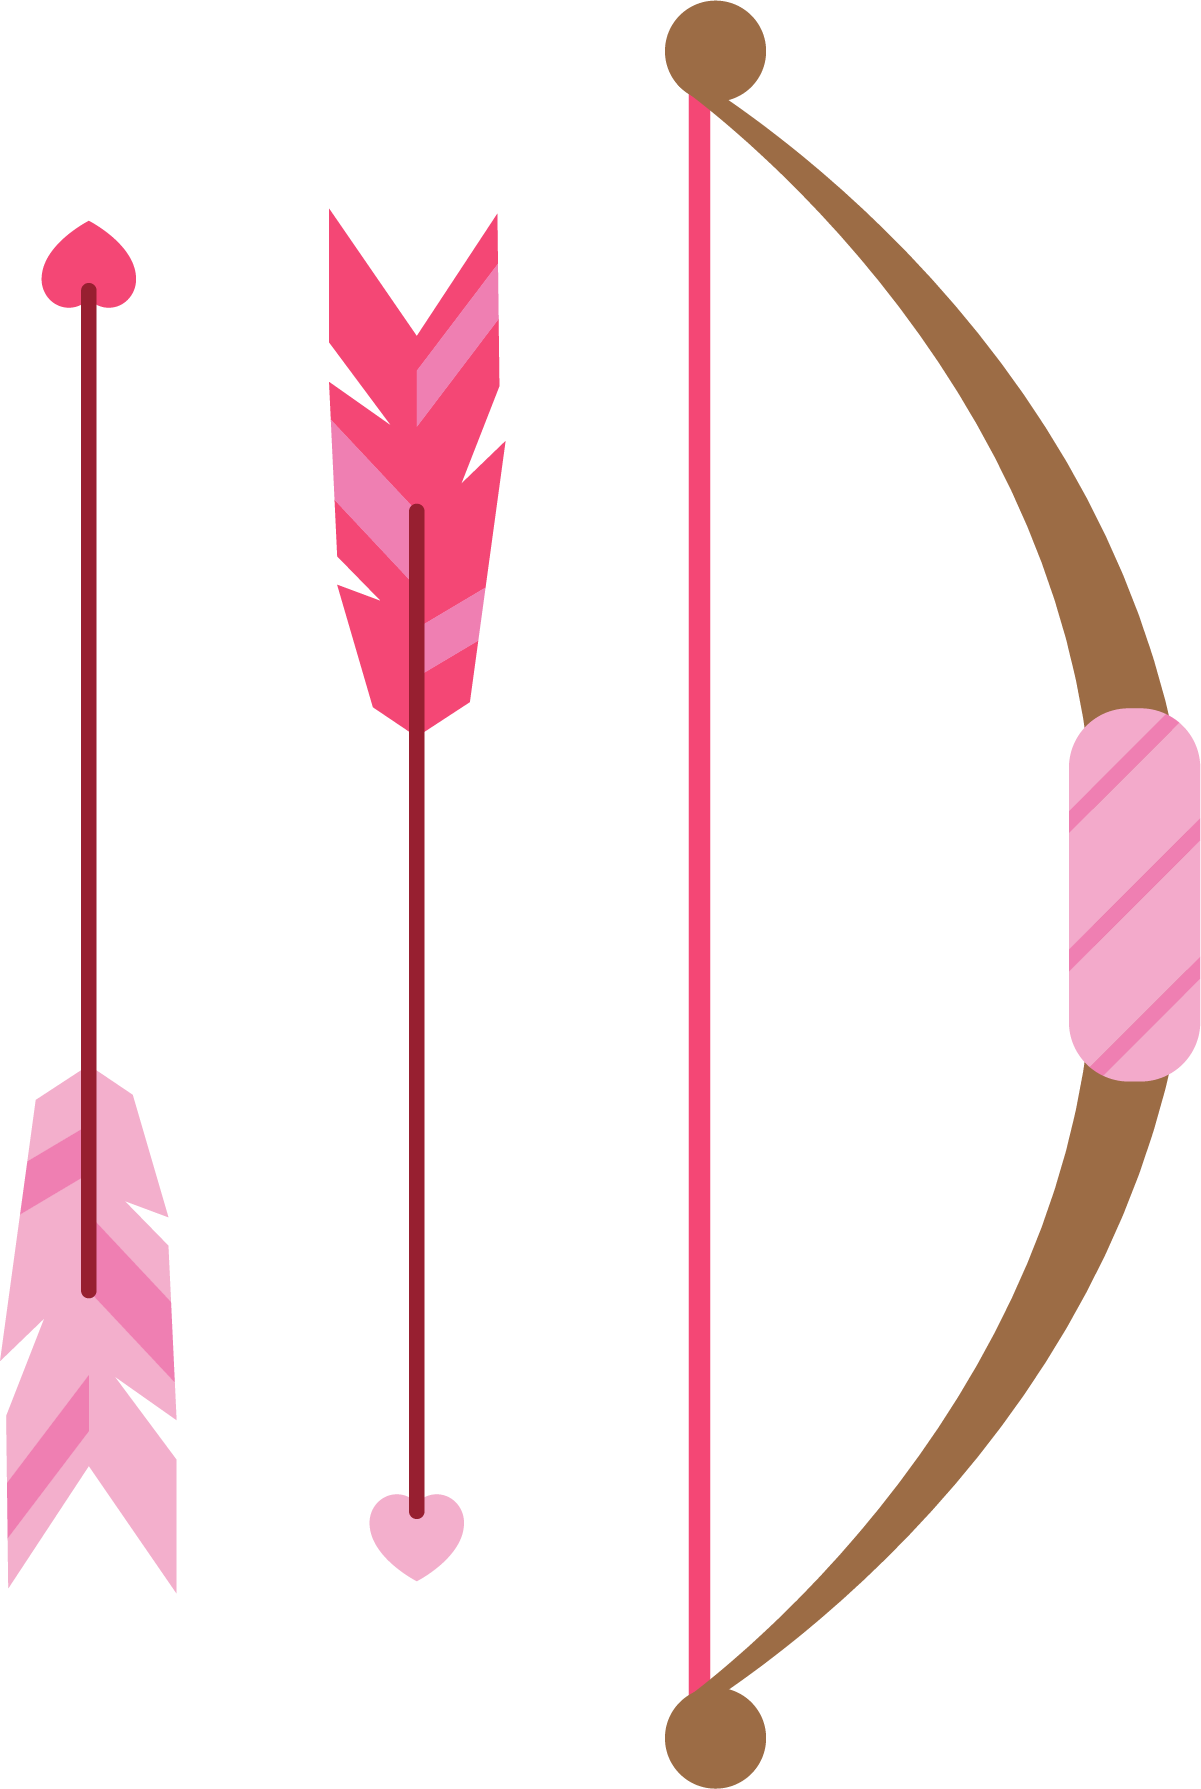 Arrow with three feathers clipart clip art free Arrow Feather Clip art - Hand painted pink feather arrow arrow 1201 ... clip art free